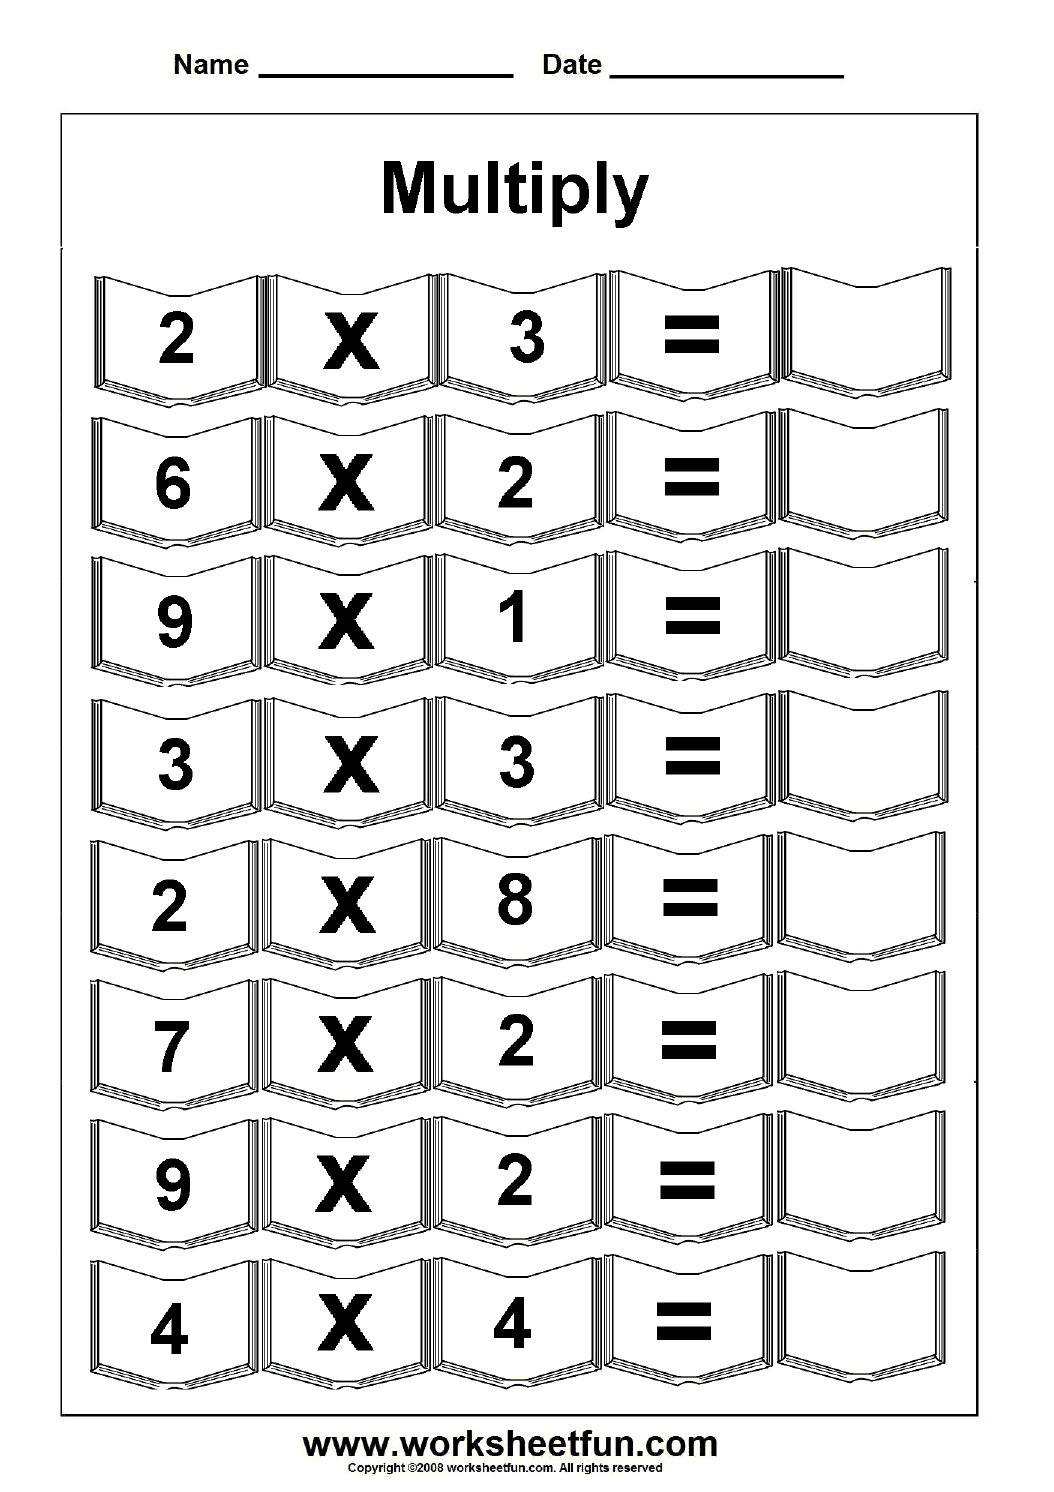 Multiplication – 5 Worksheets / Free Printable Worksheets – Worksheetfun - Free Printable 5 W's Worksheets